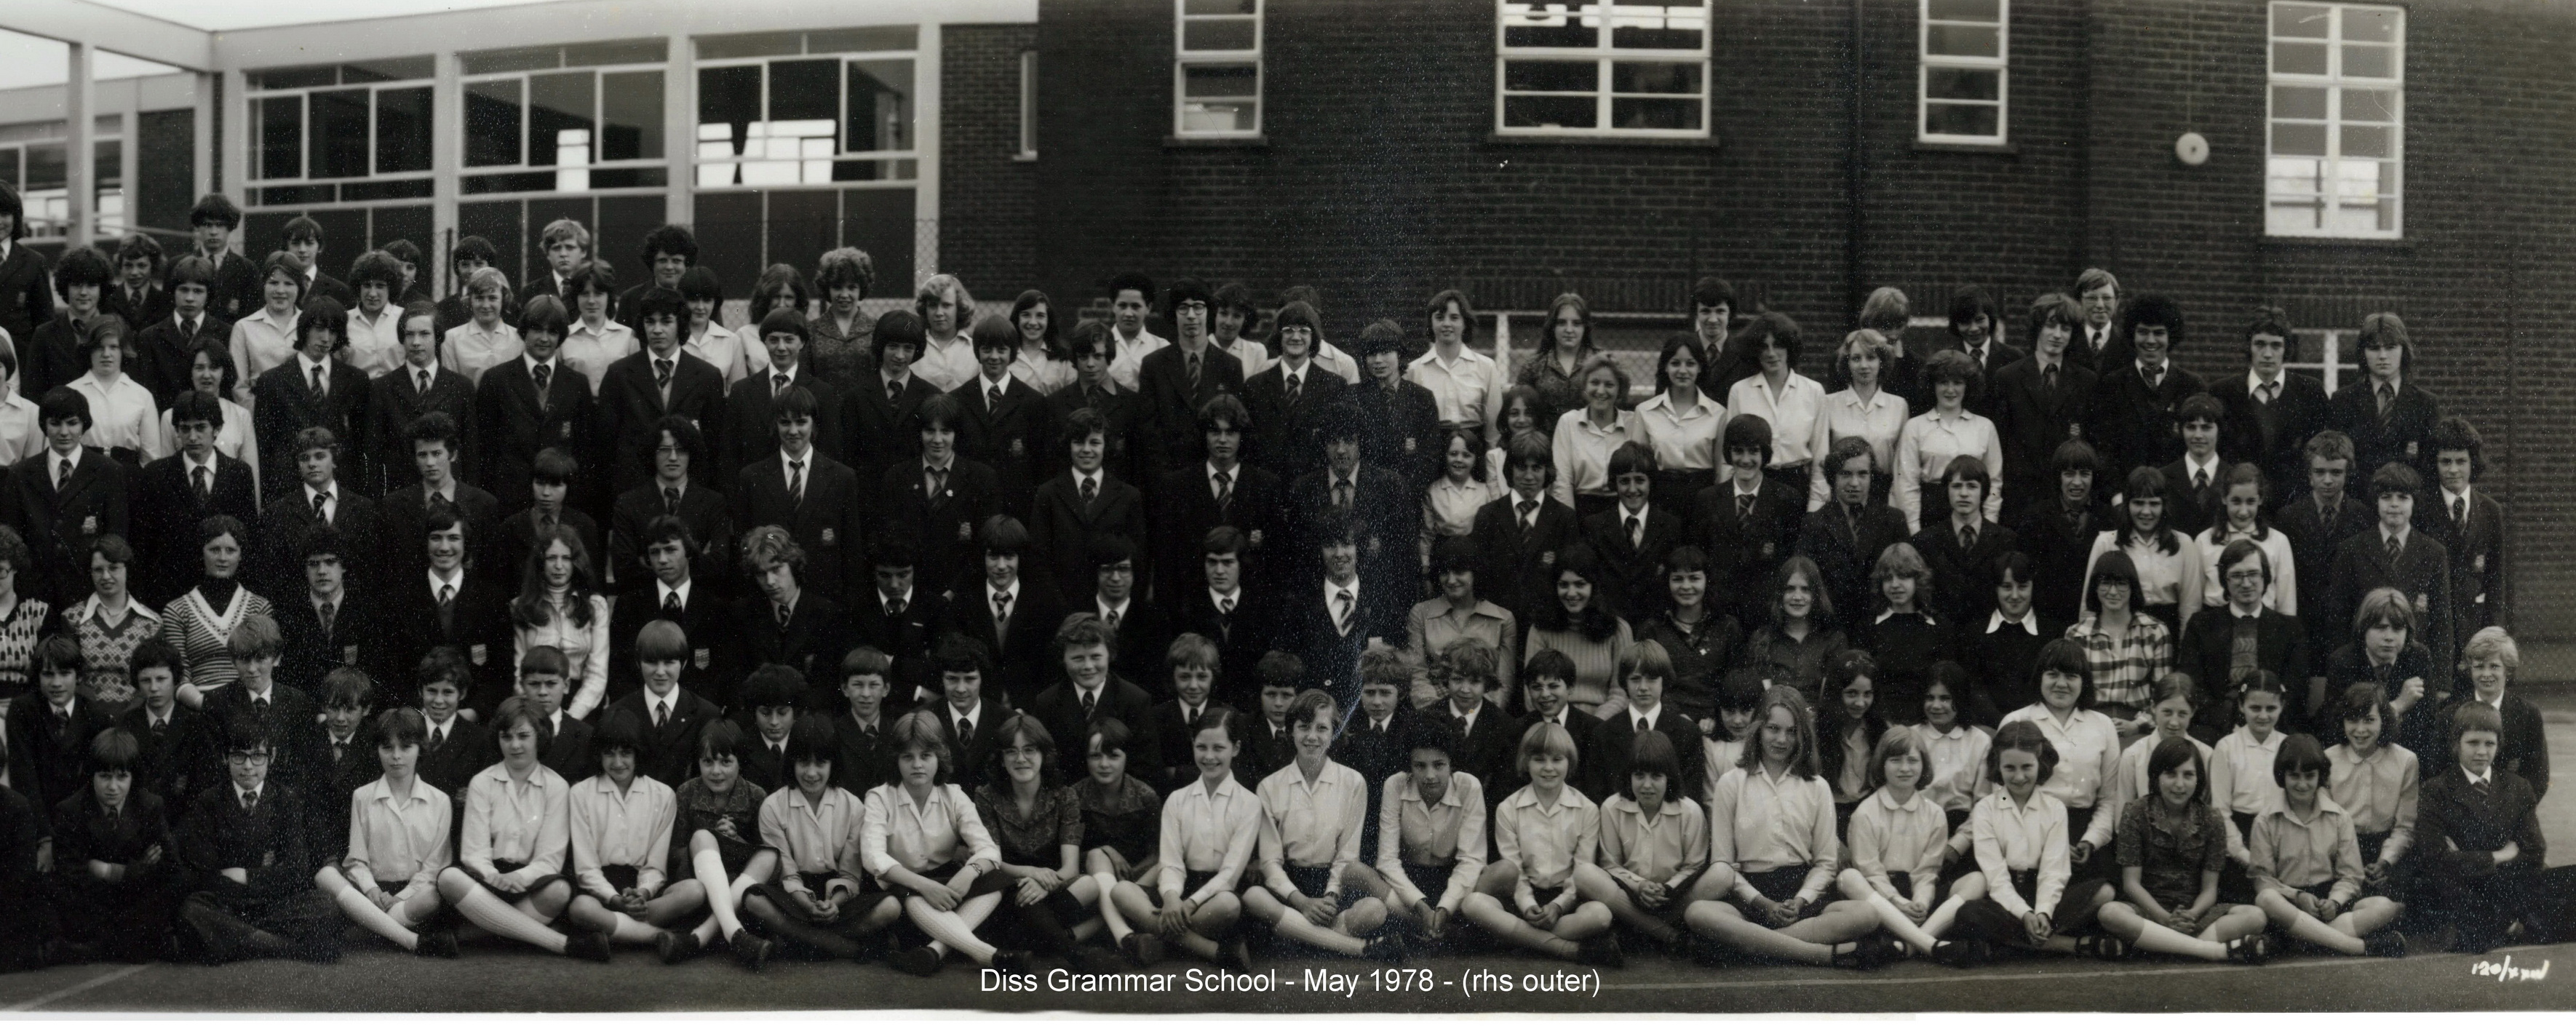 Photo: Diss Grammar School - May 1978 - rhs outer (Thanks to Helen McGuinness)